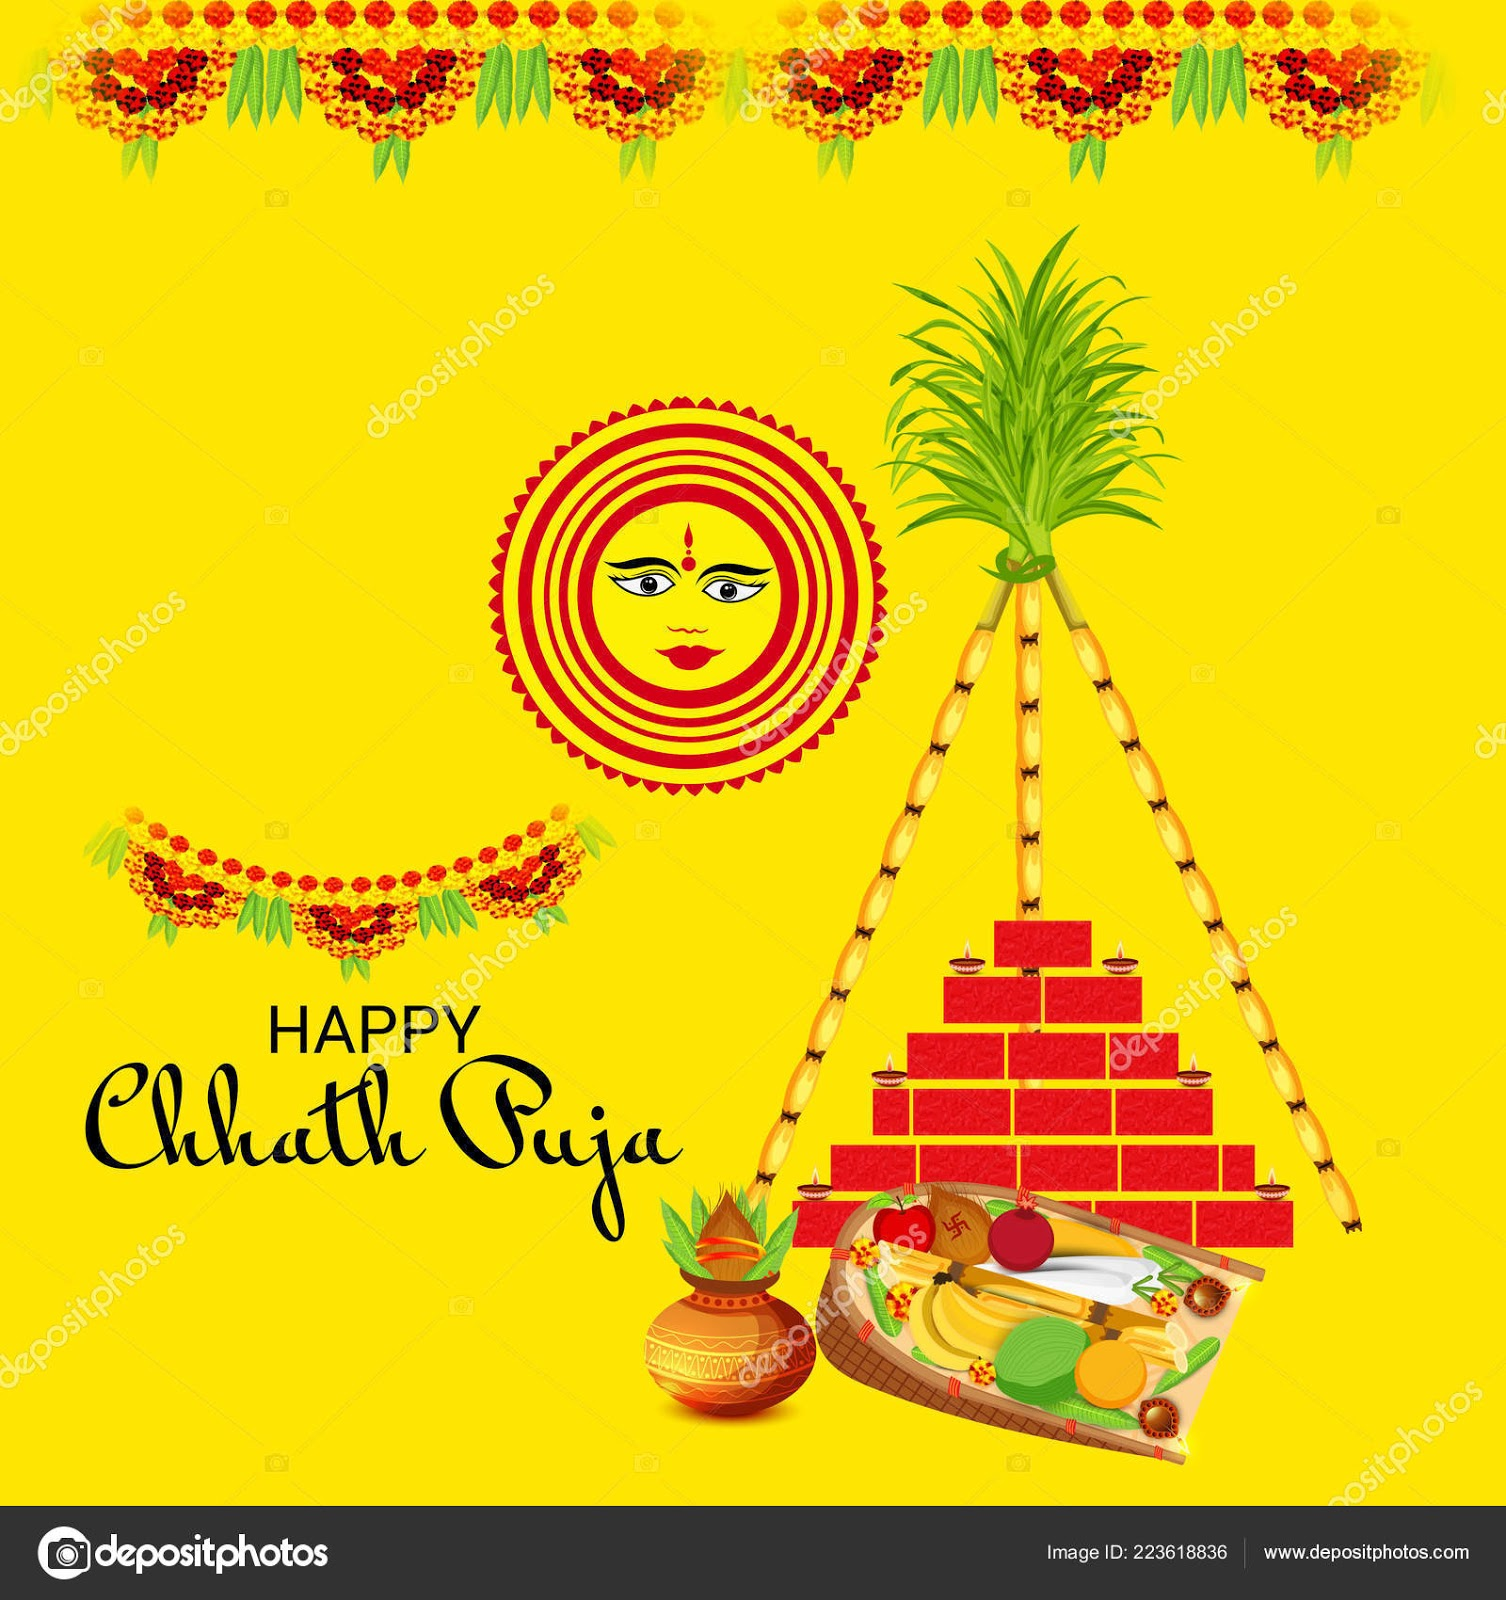 Happy Chhath Puja 2019 Images, Wishes, Messages, Quotes, Cards, Greetings, Pictures, GIFs and Wallpapers